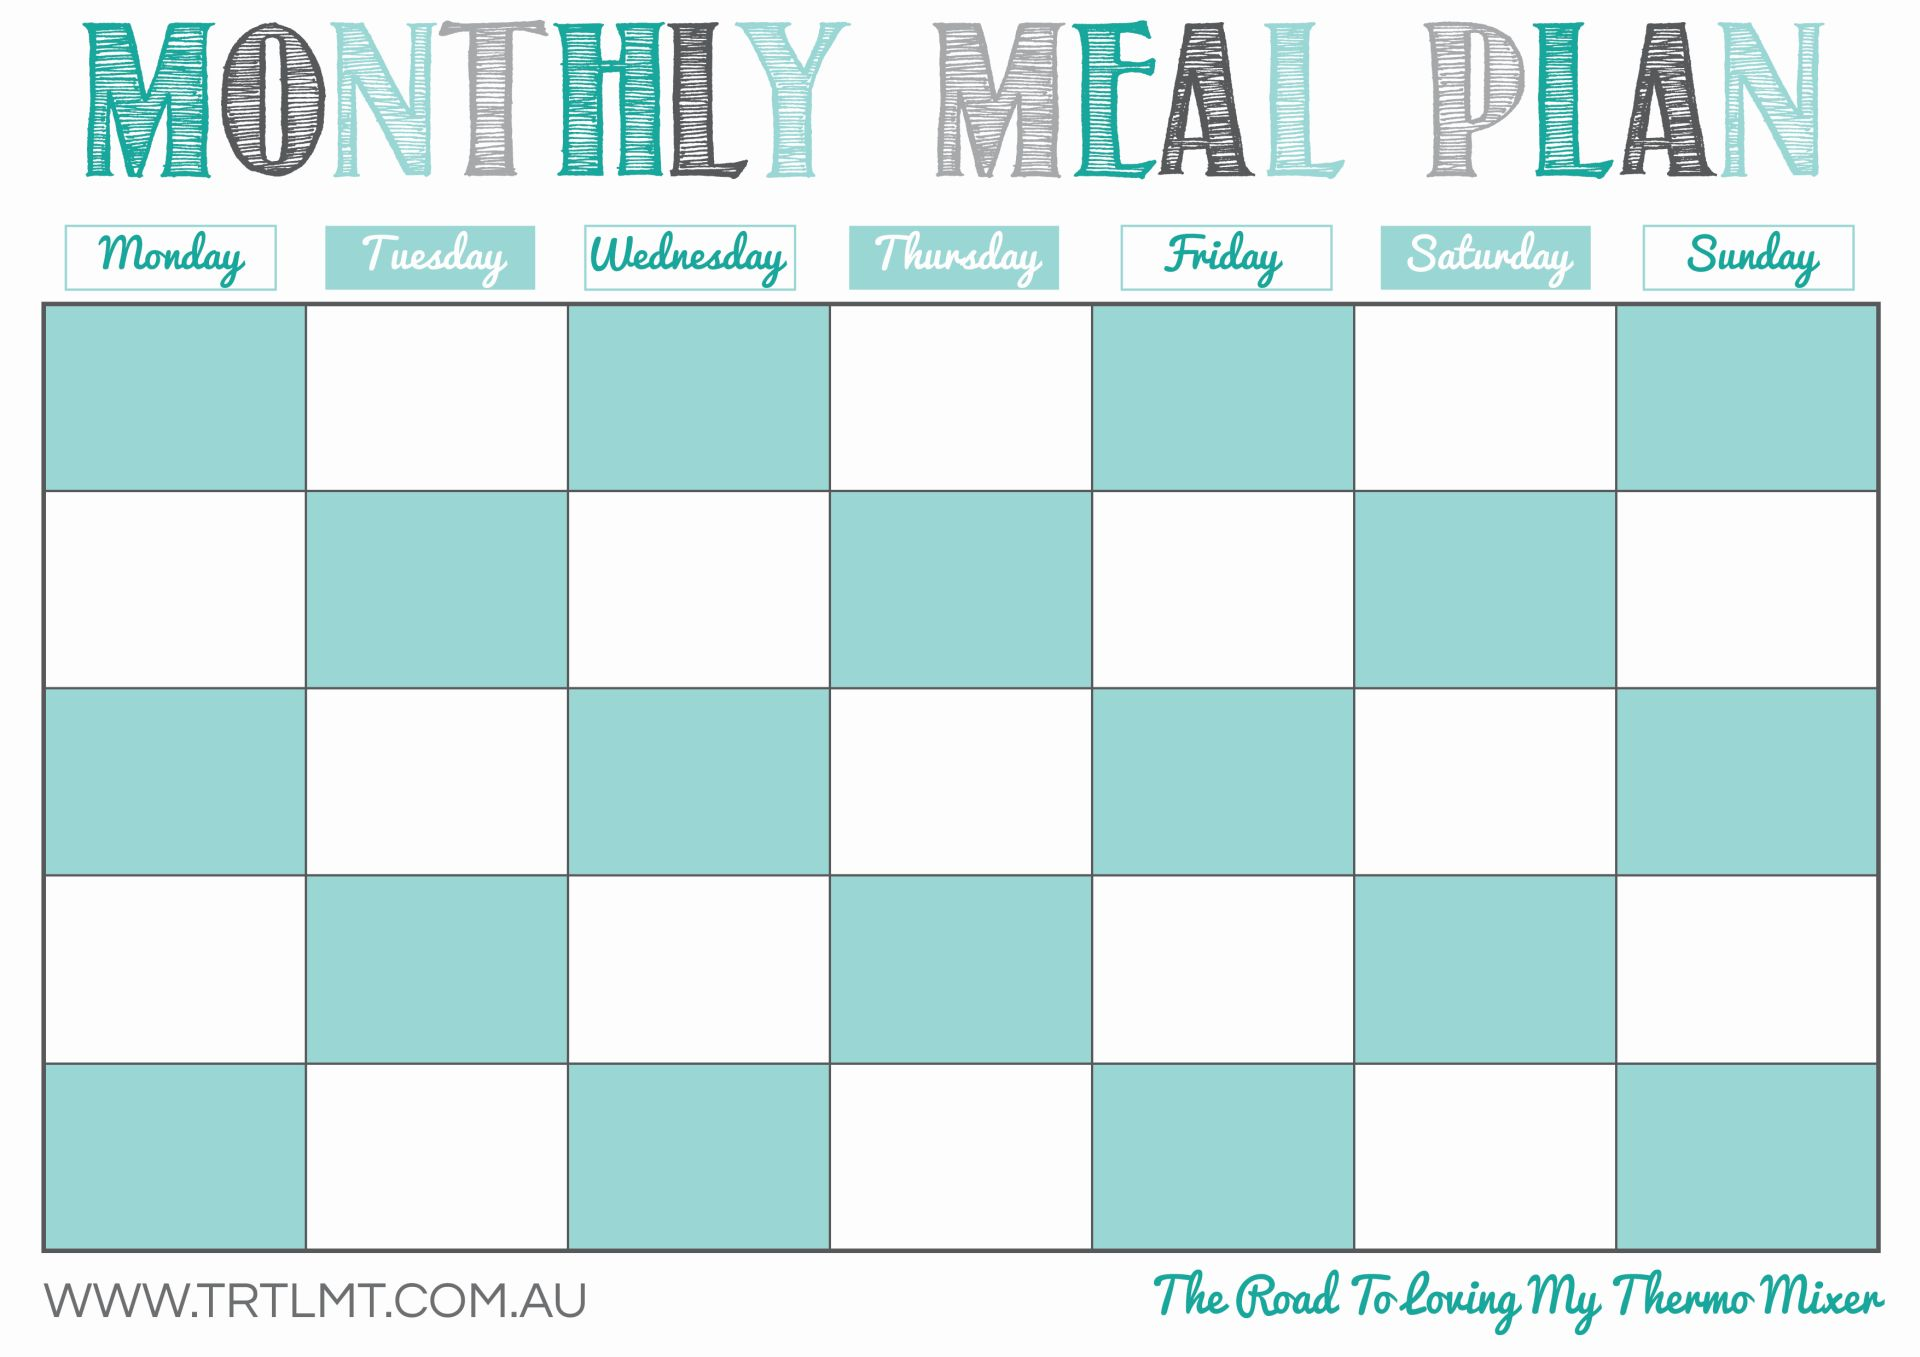 Monthly Meal Plan FB